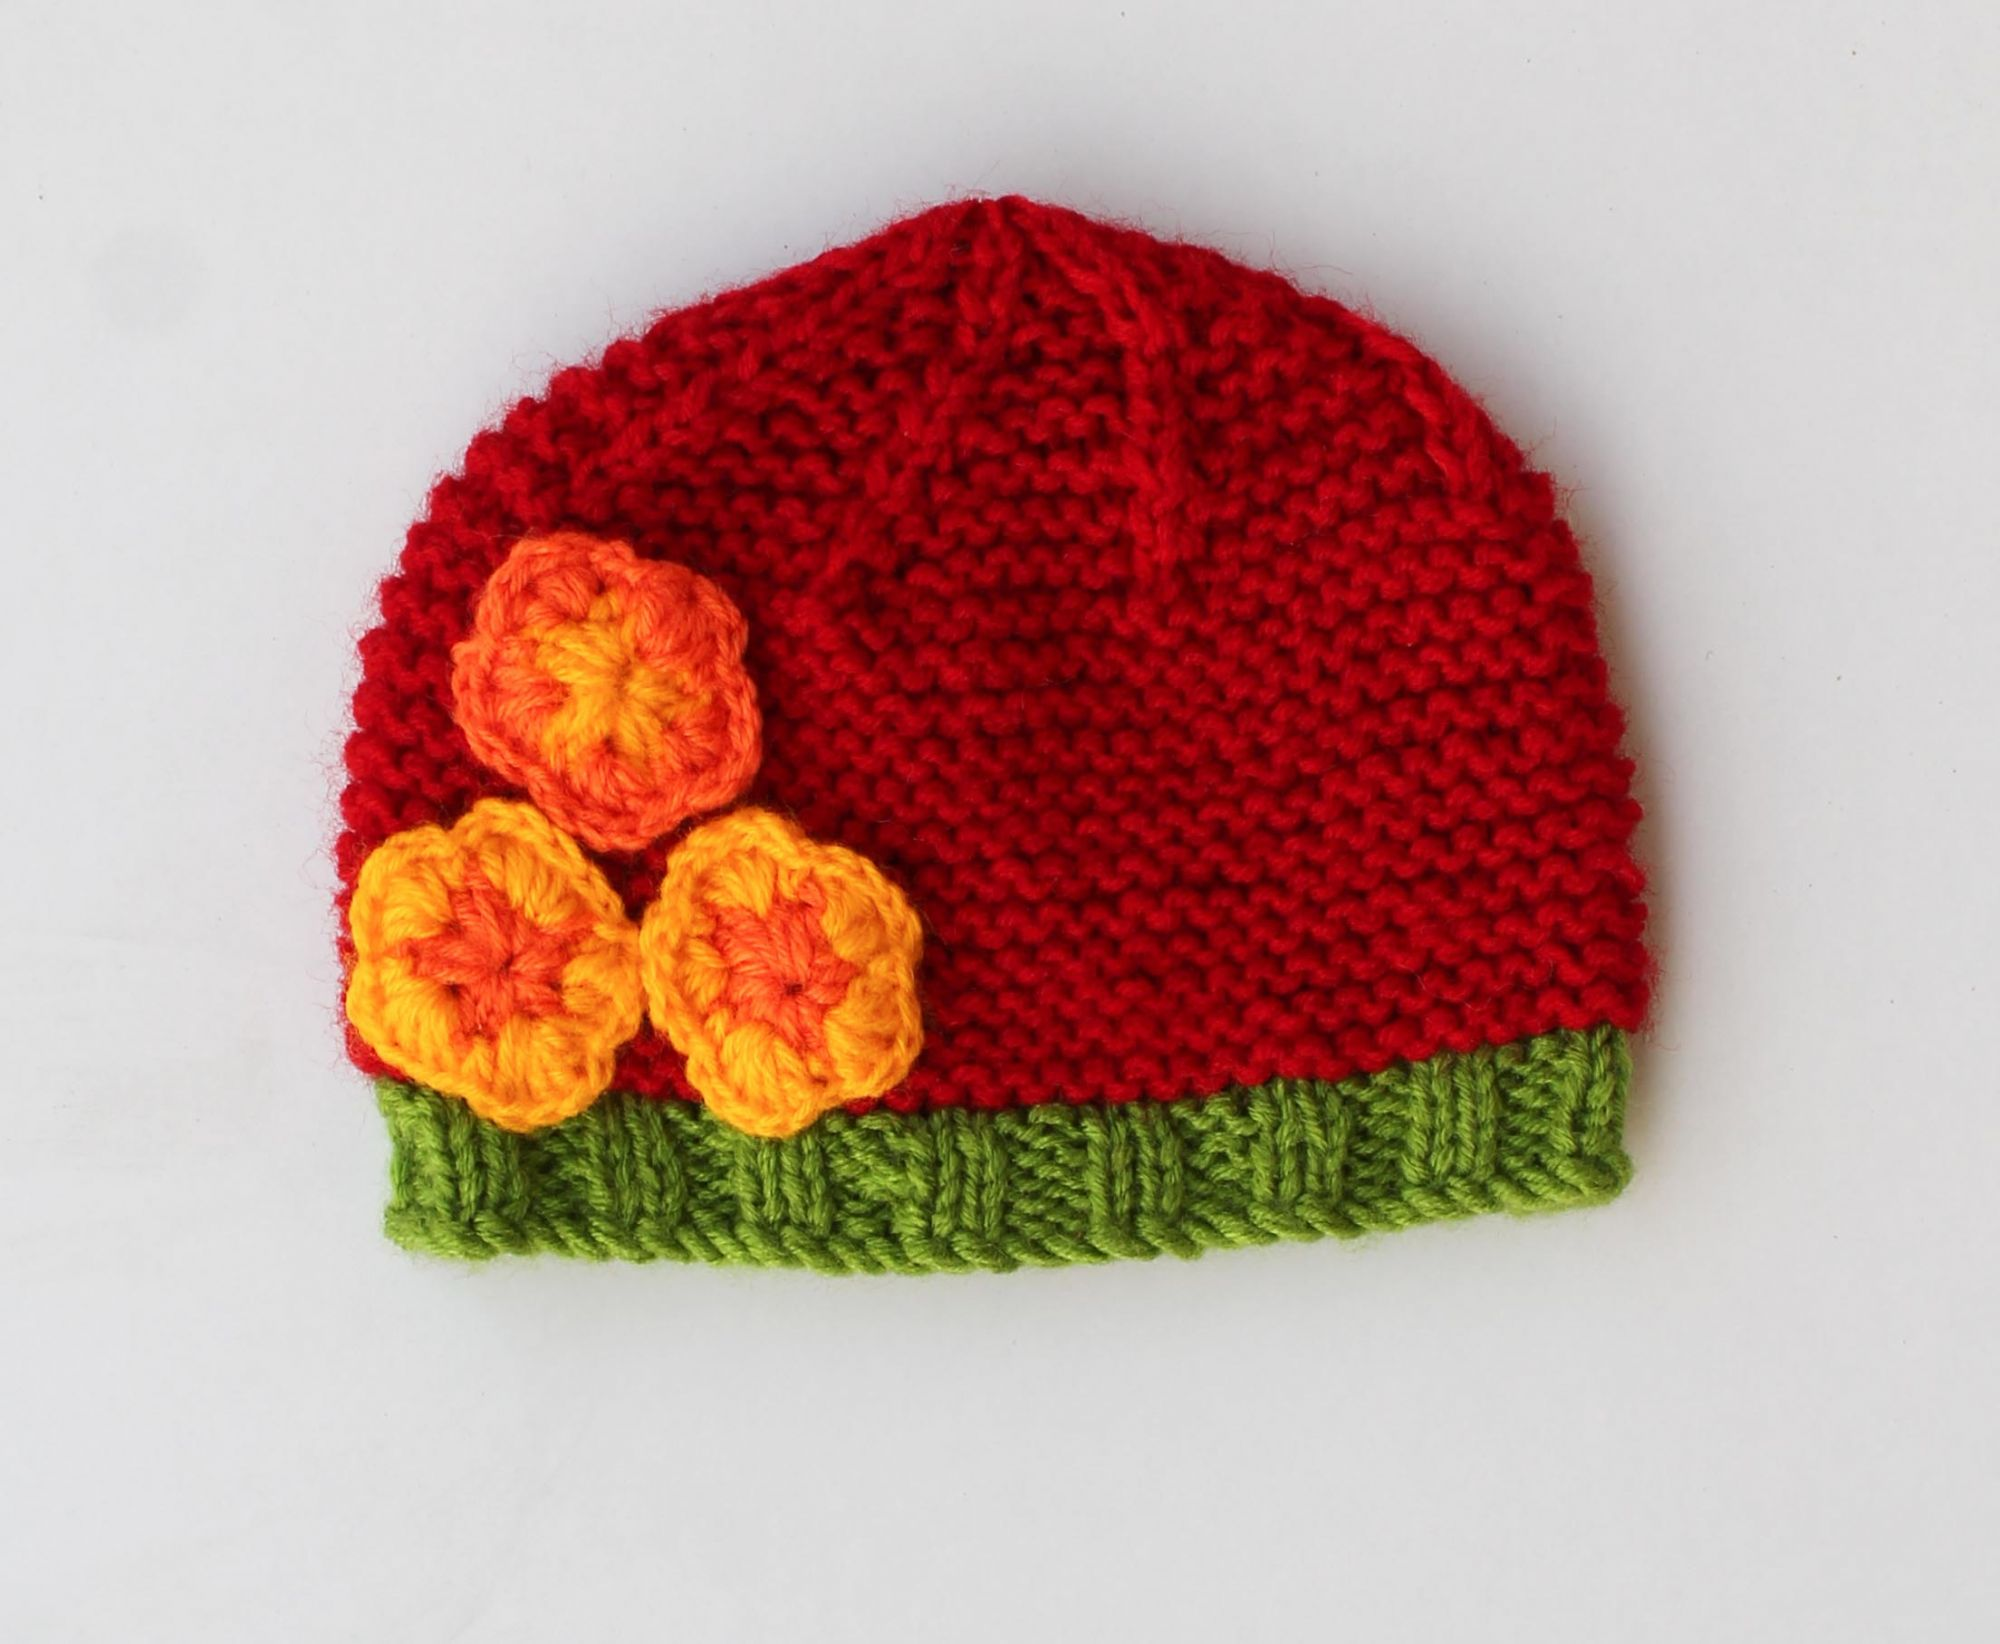 Knitted Floral Woolen Cap for Infants